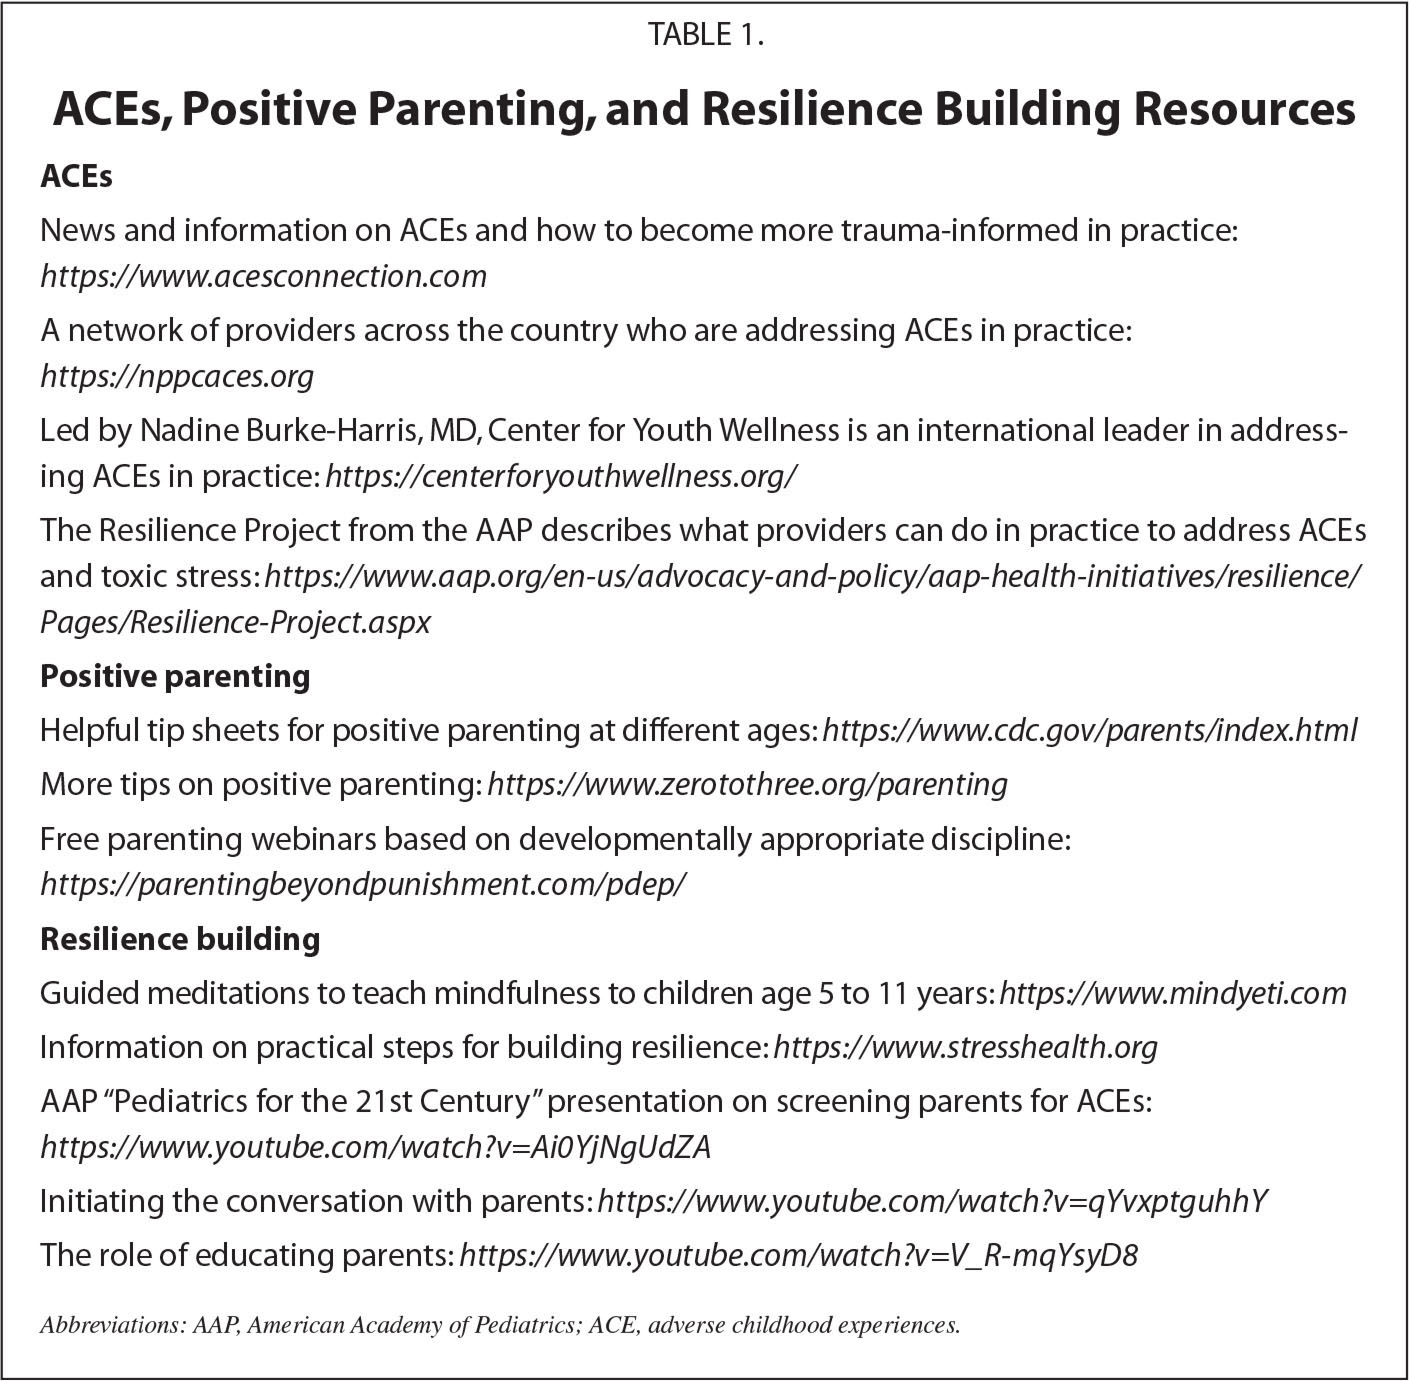 ACEs, Positive Parenting, and Resilience Building Resources